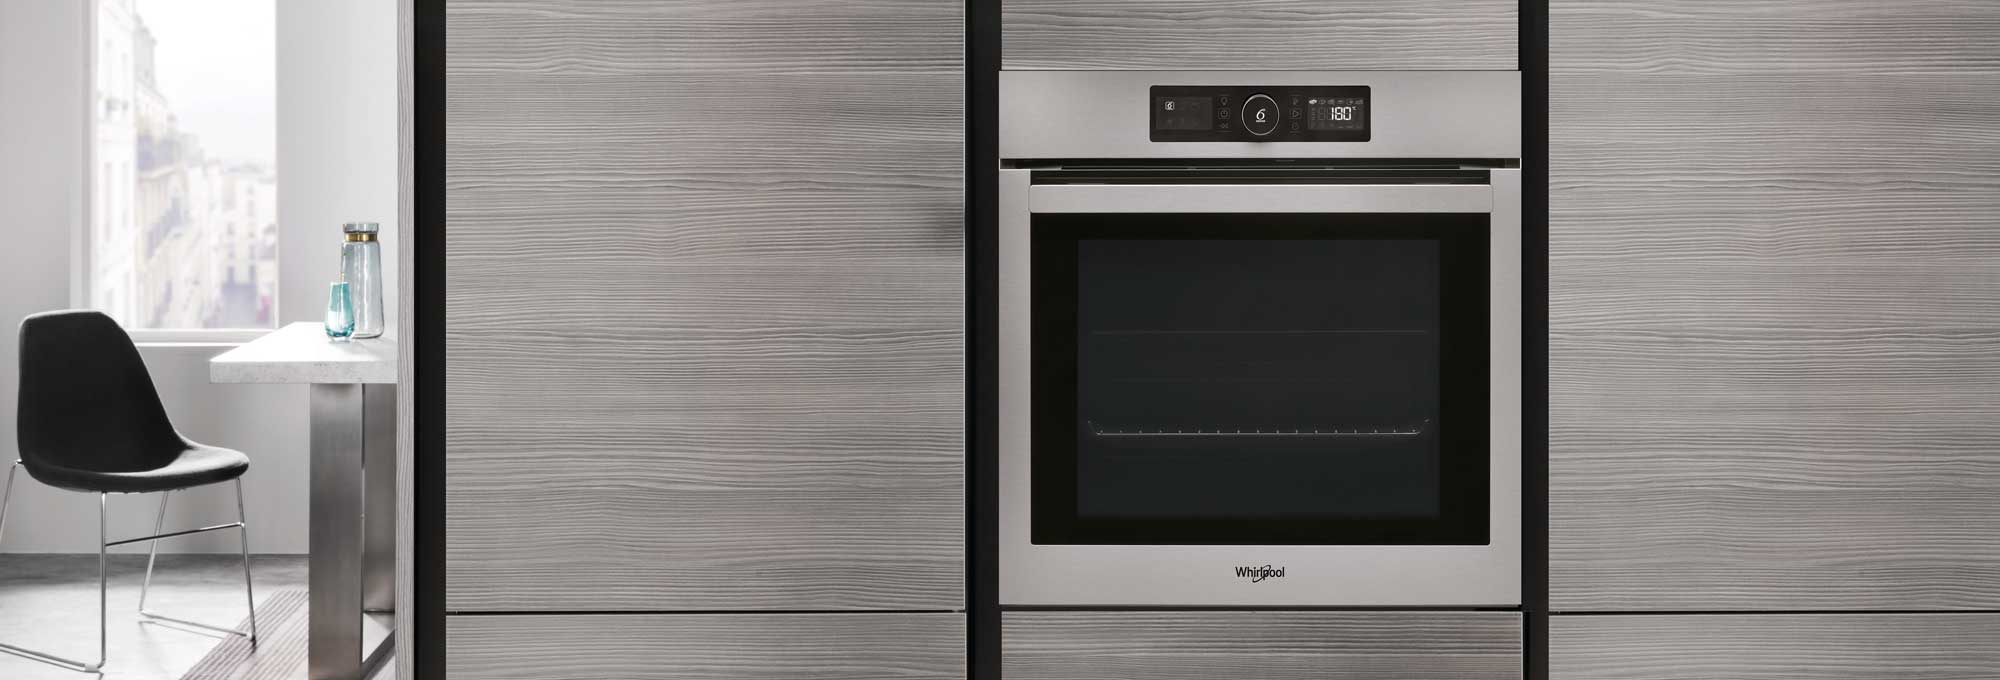 Whirlpool Absolute AKZ96230IX Built In Electric Single Oven - Stainless Steel - AKZ96230IX_SS - 2